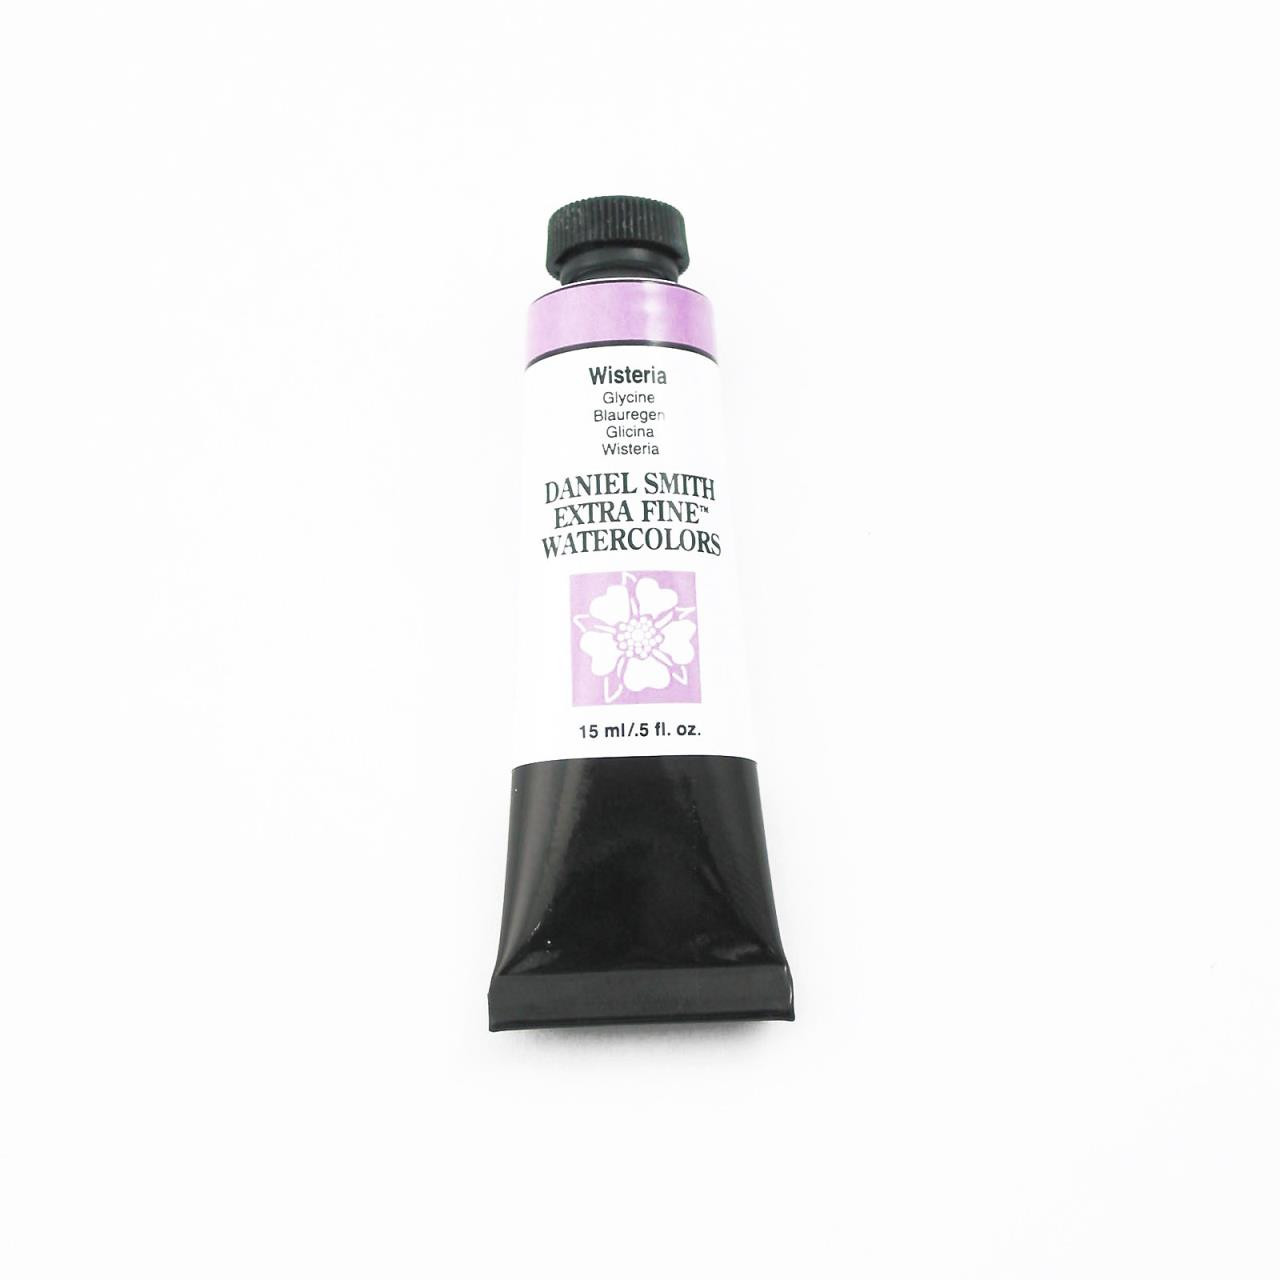 DANIEL SMITH Extra Fine Watercolors 15ml Tubes, Wisteria - 743162033331